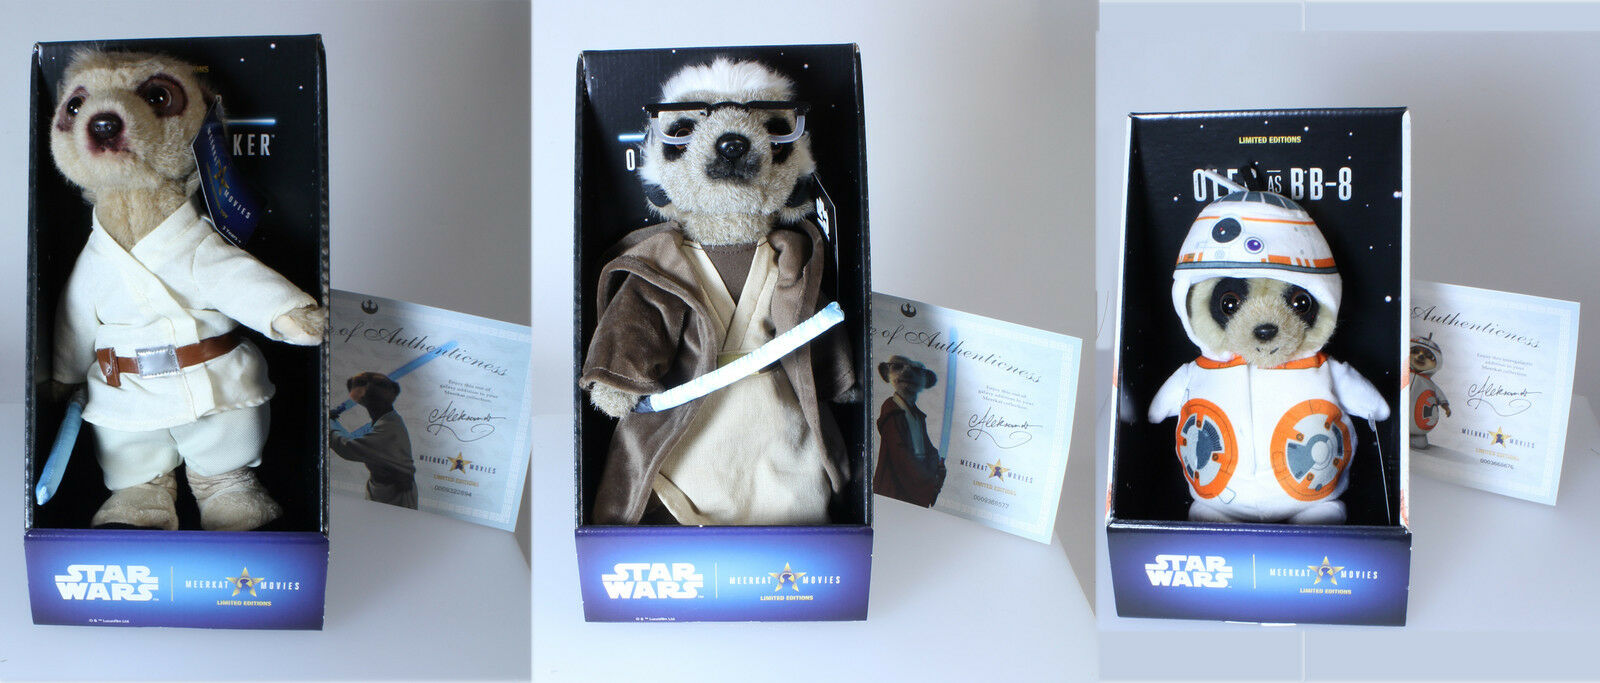 Discontinued Compare The Meerkat Star Wars Trio - Luke, Obi-Wan Kenobi and BB8